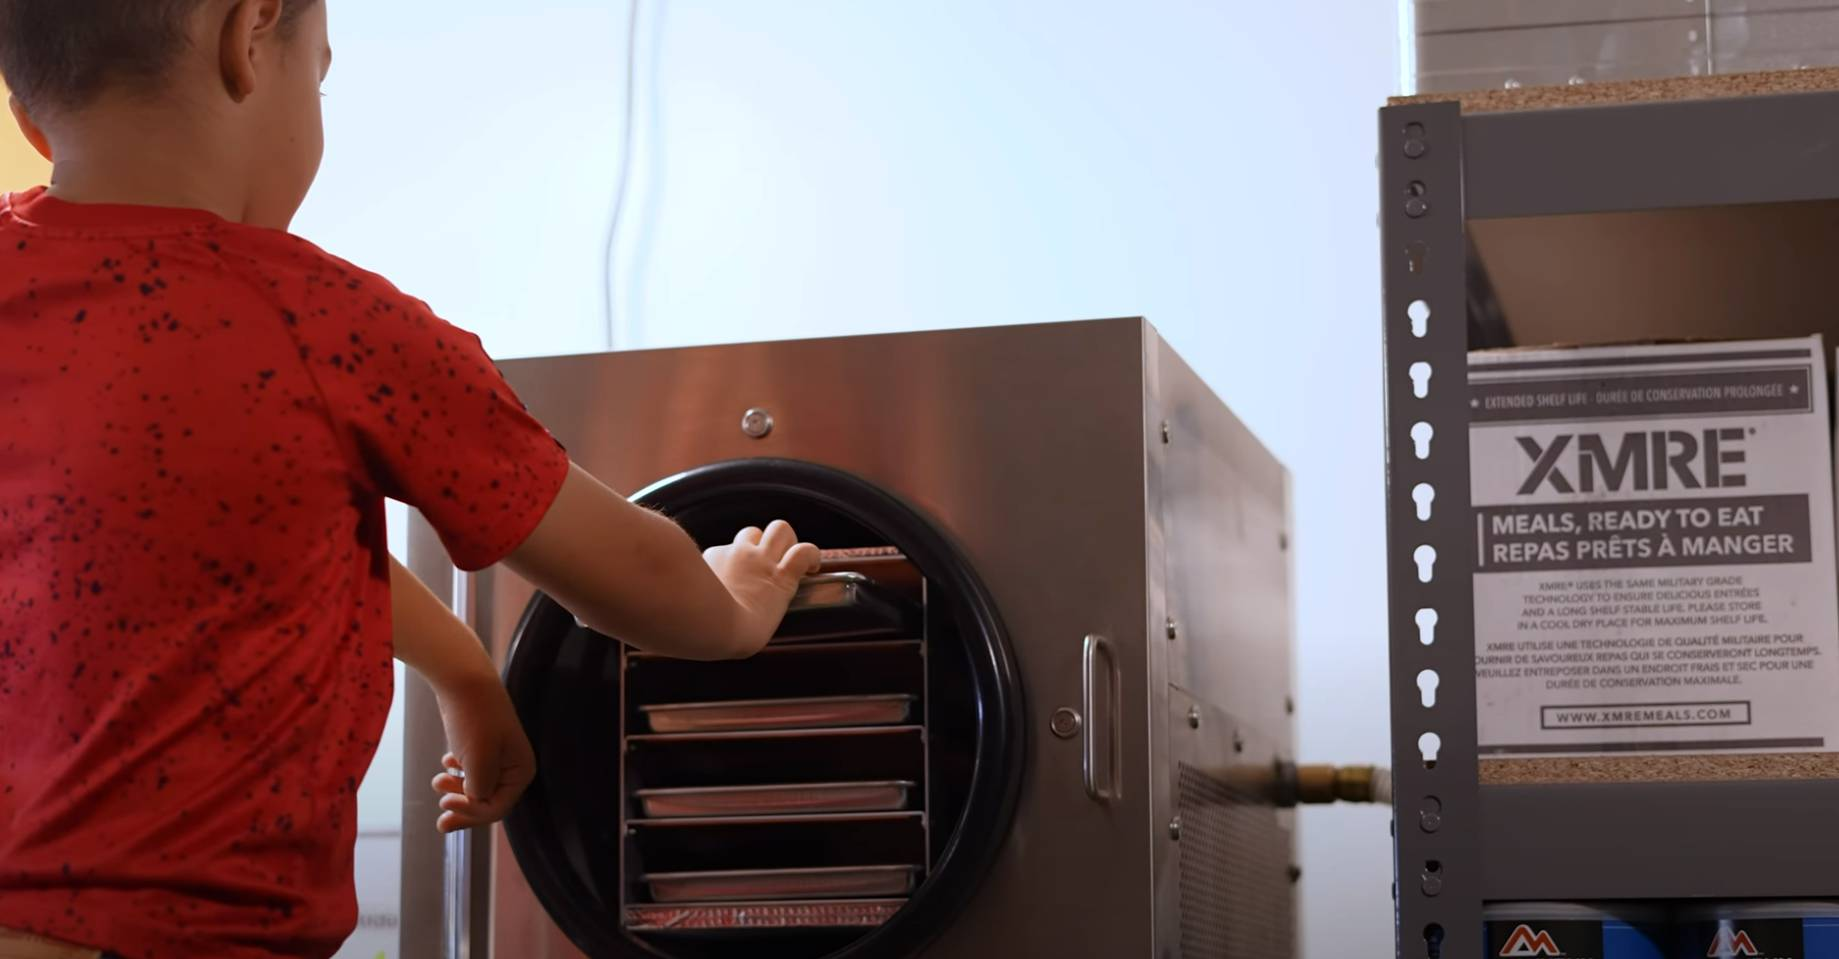 Son placing a tray of food into a freeze dryer